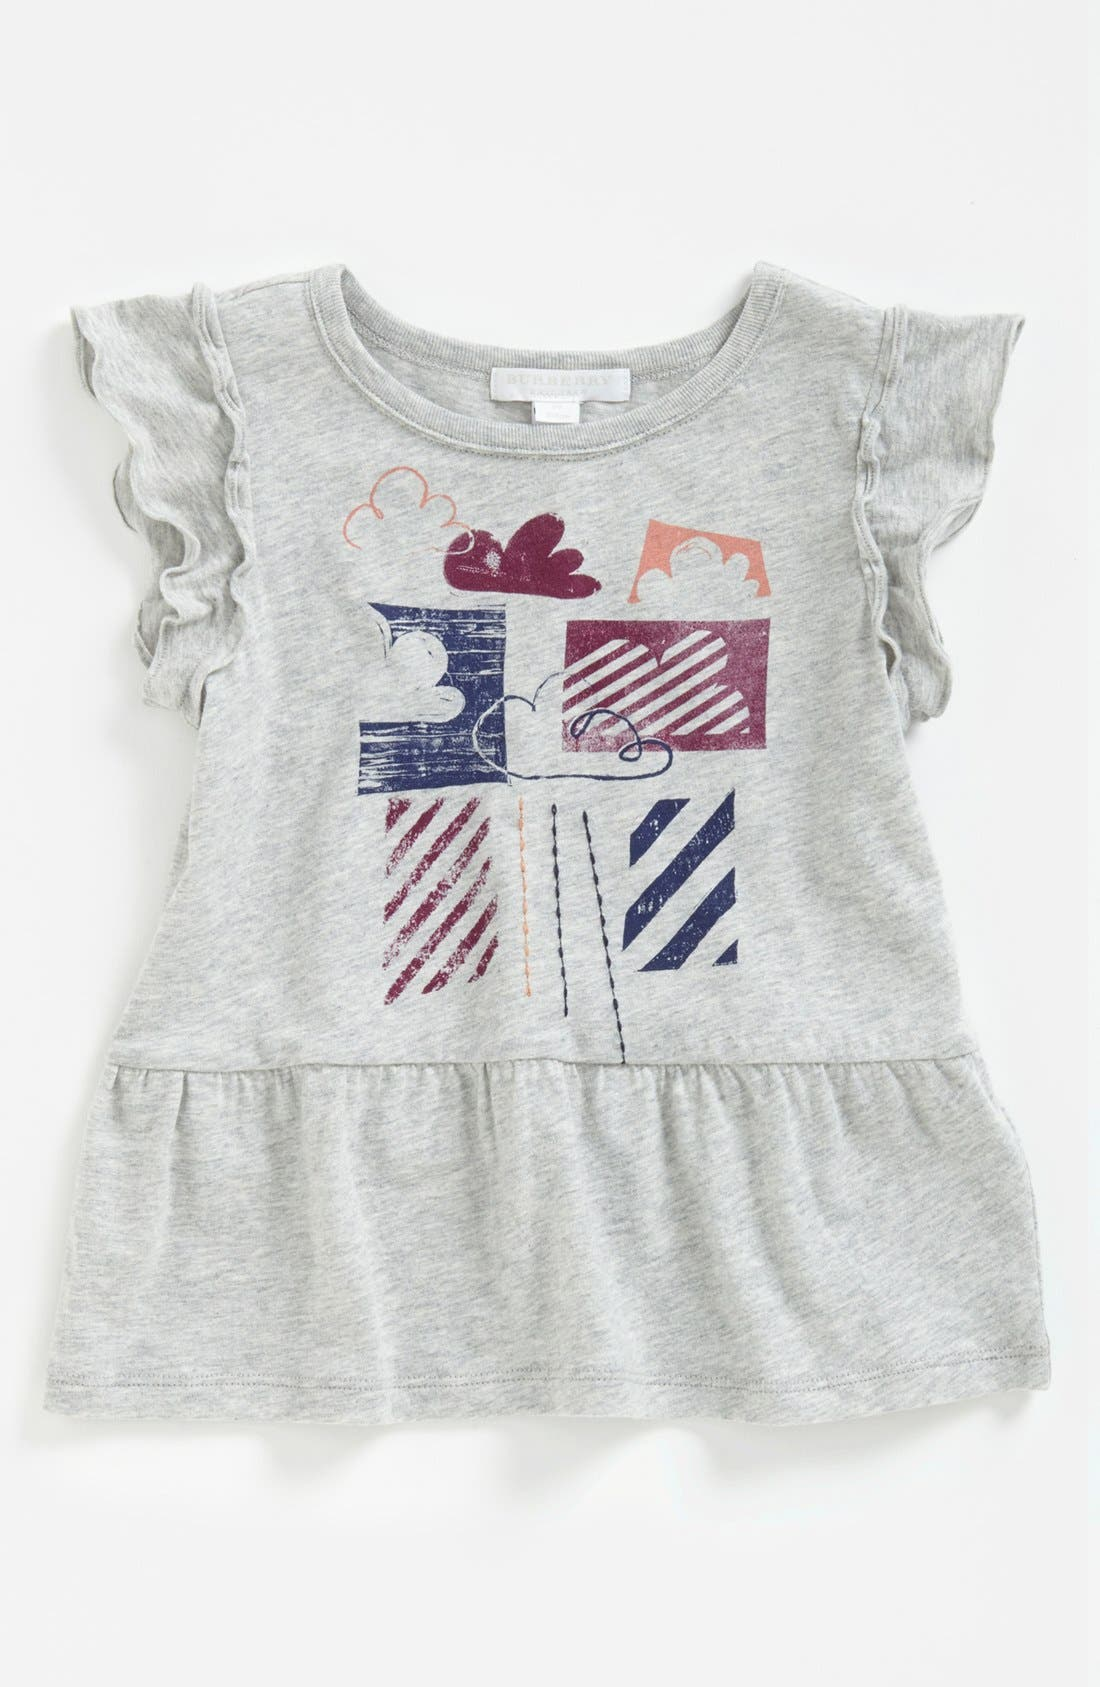 Main Image - Burberry 'Cloudy' Peplum Ruffle Top (Toddler Girls, Little Girls & Big Girls)